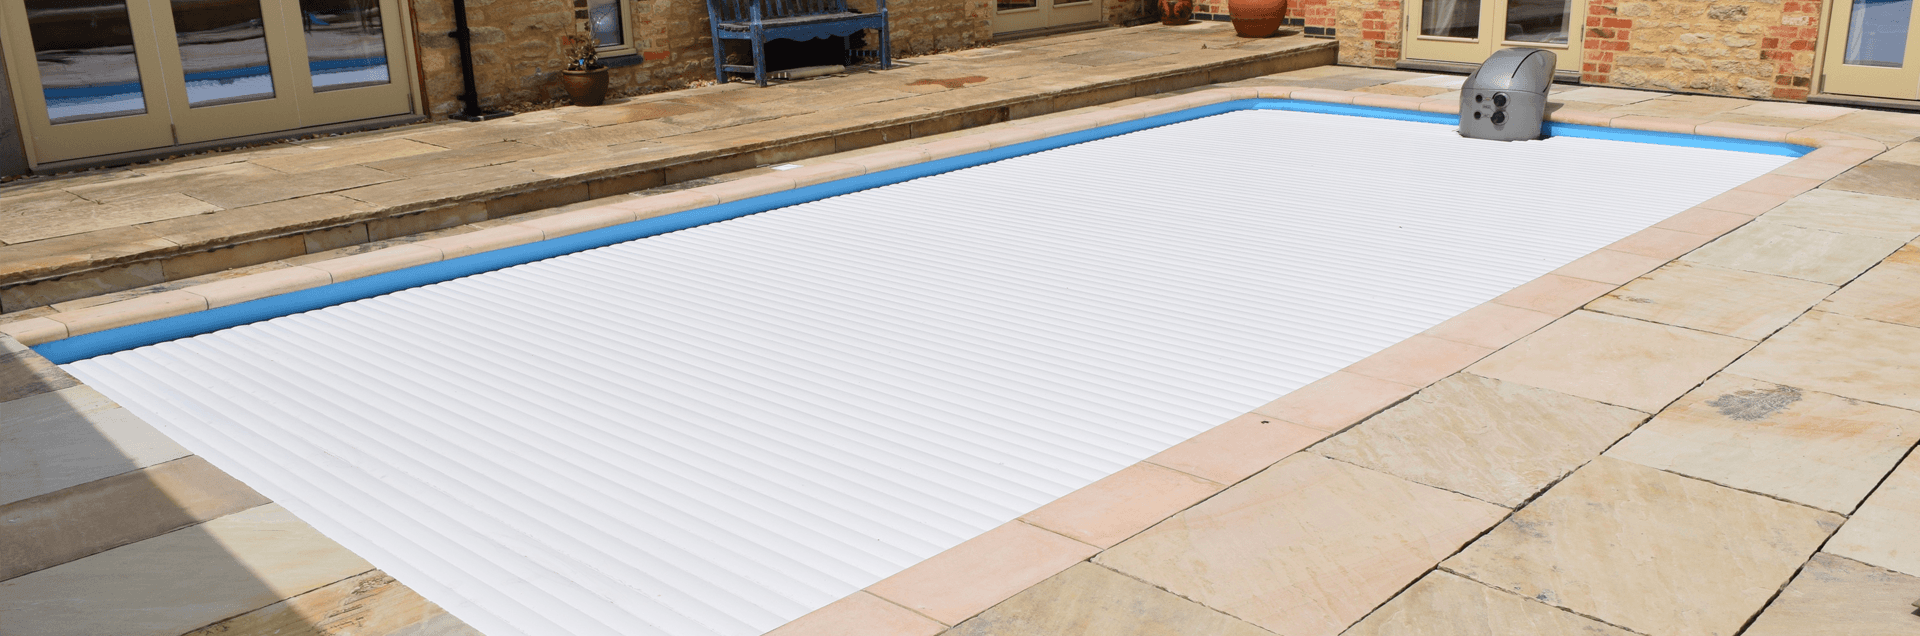 Propa pool with a safety cover